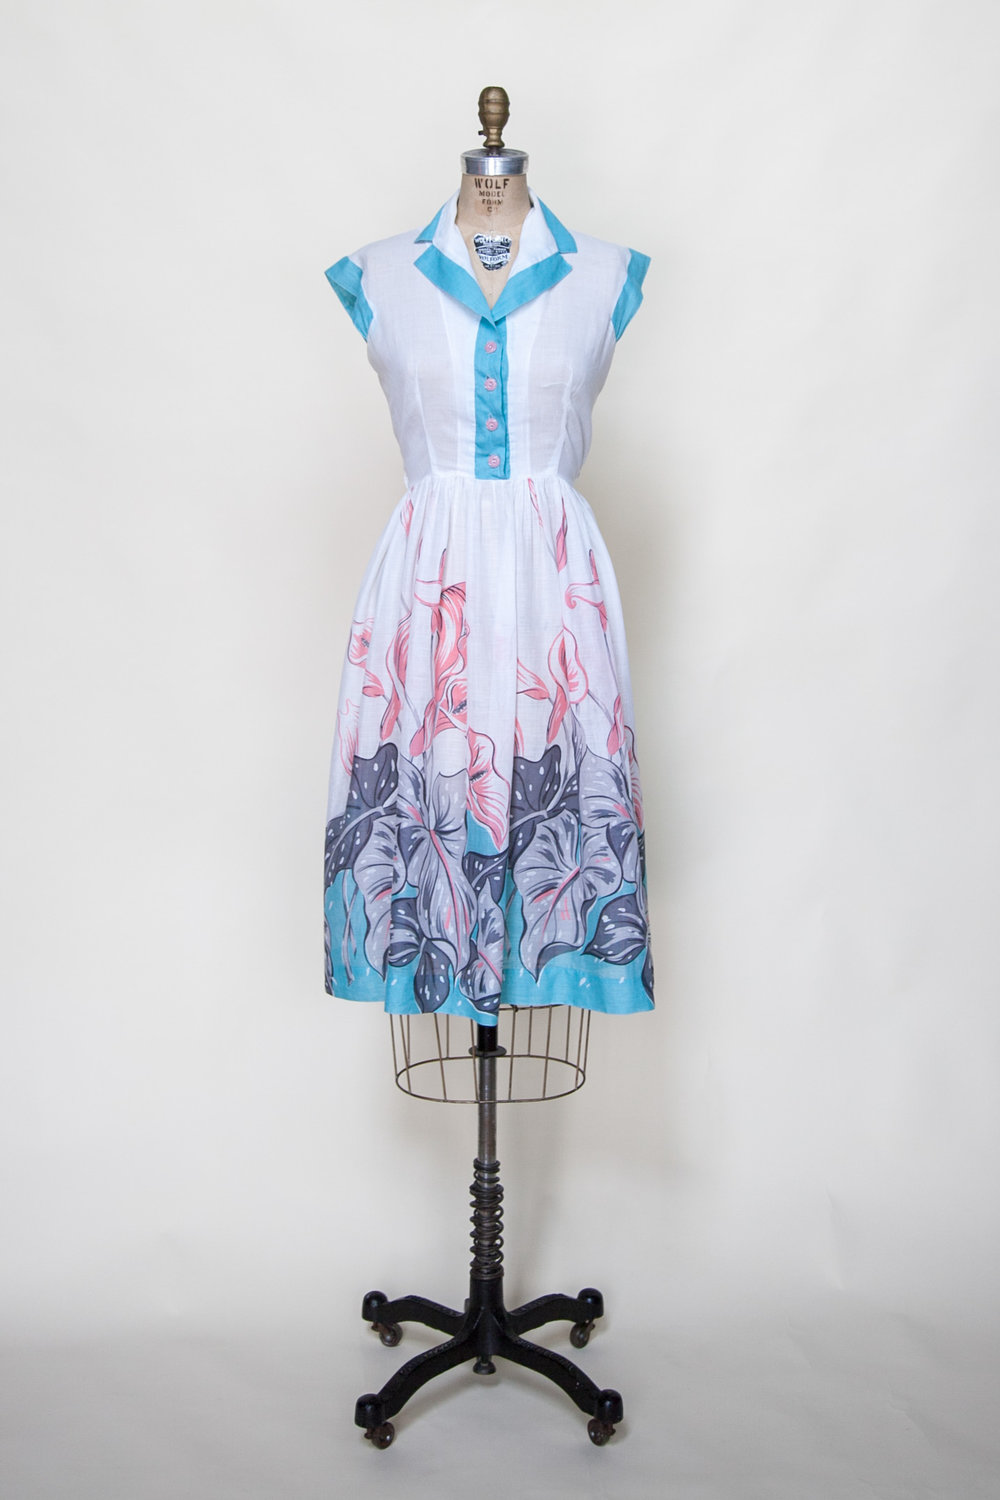 Vintage 1950s dress from Dalena Vintage